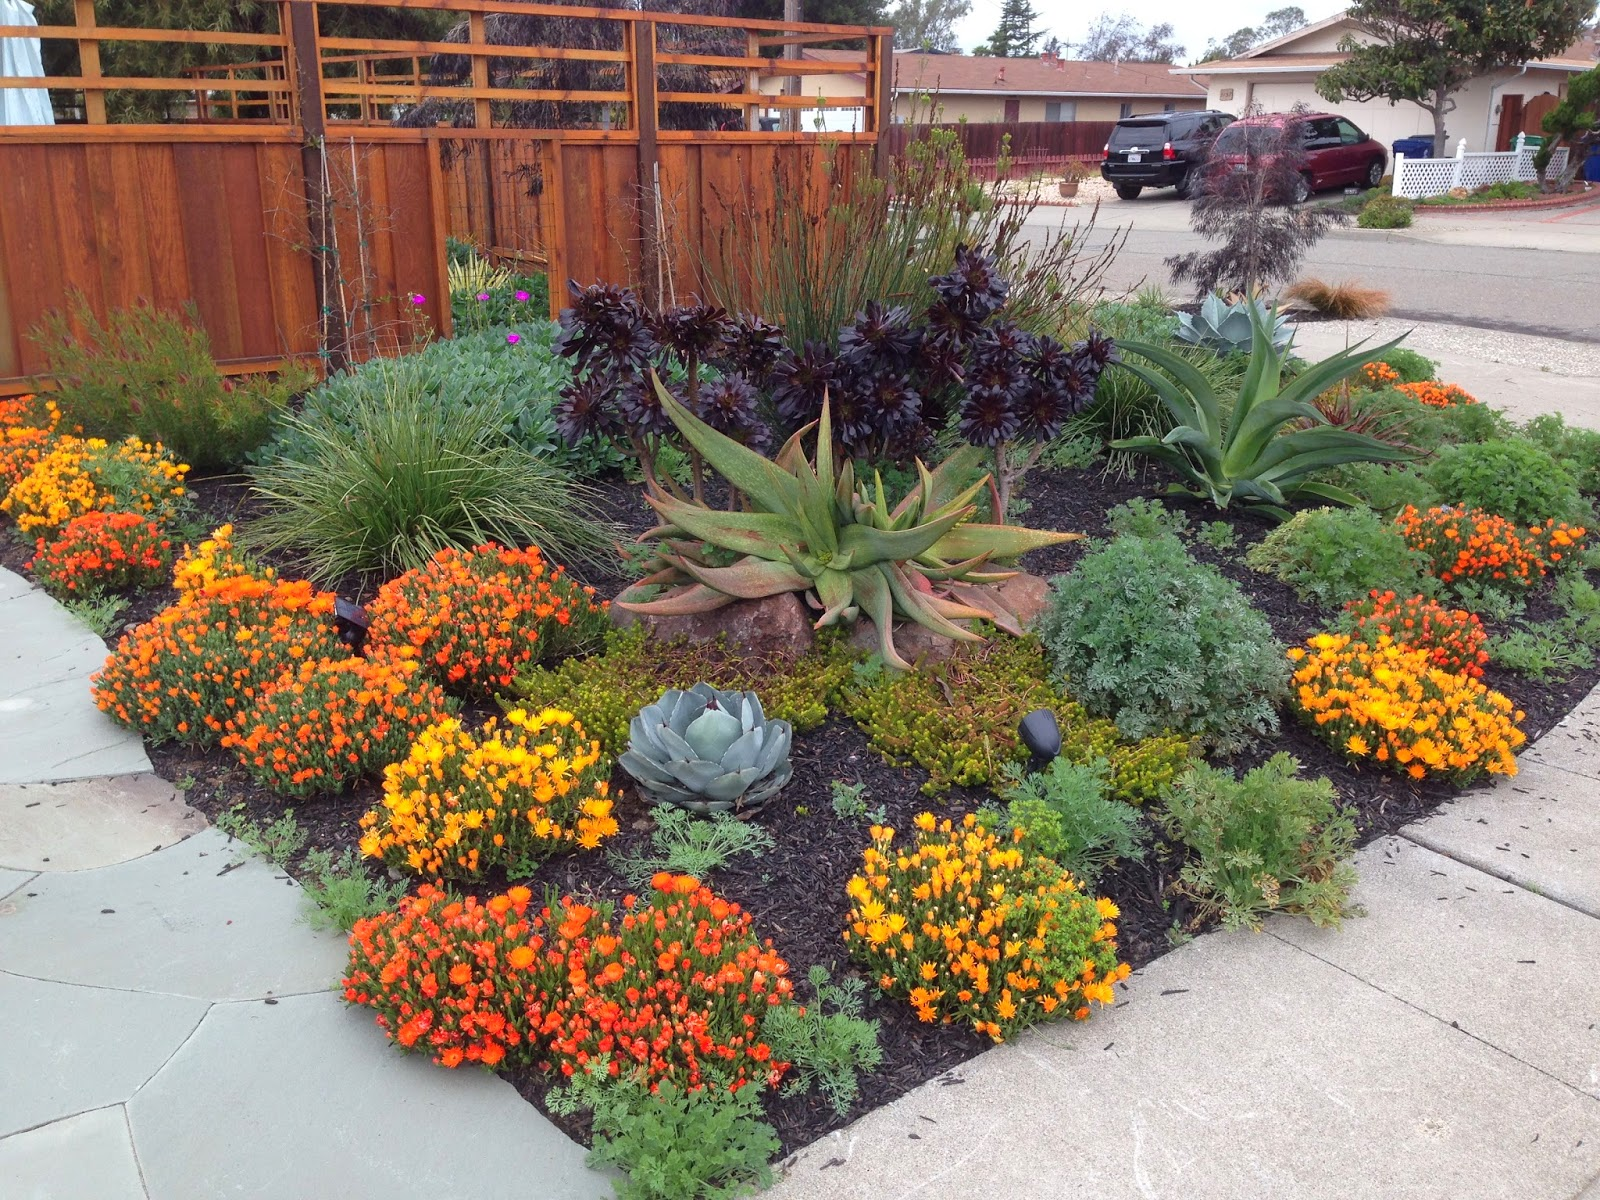 Farallon gardens alameda drought tolerant garden for Low maintenance drought tolerant plants